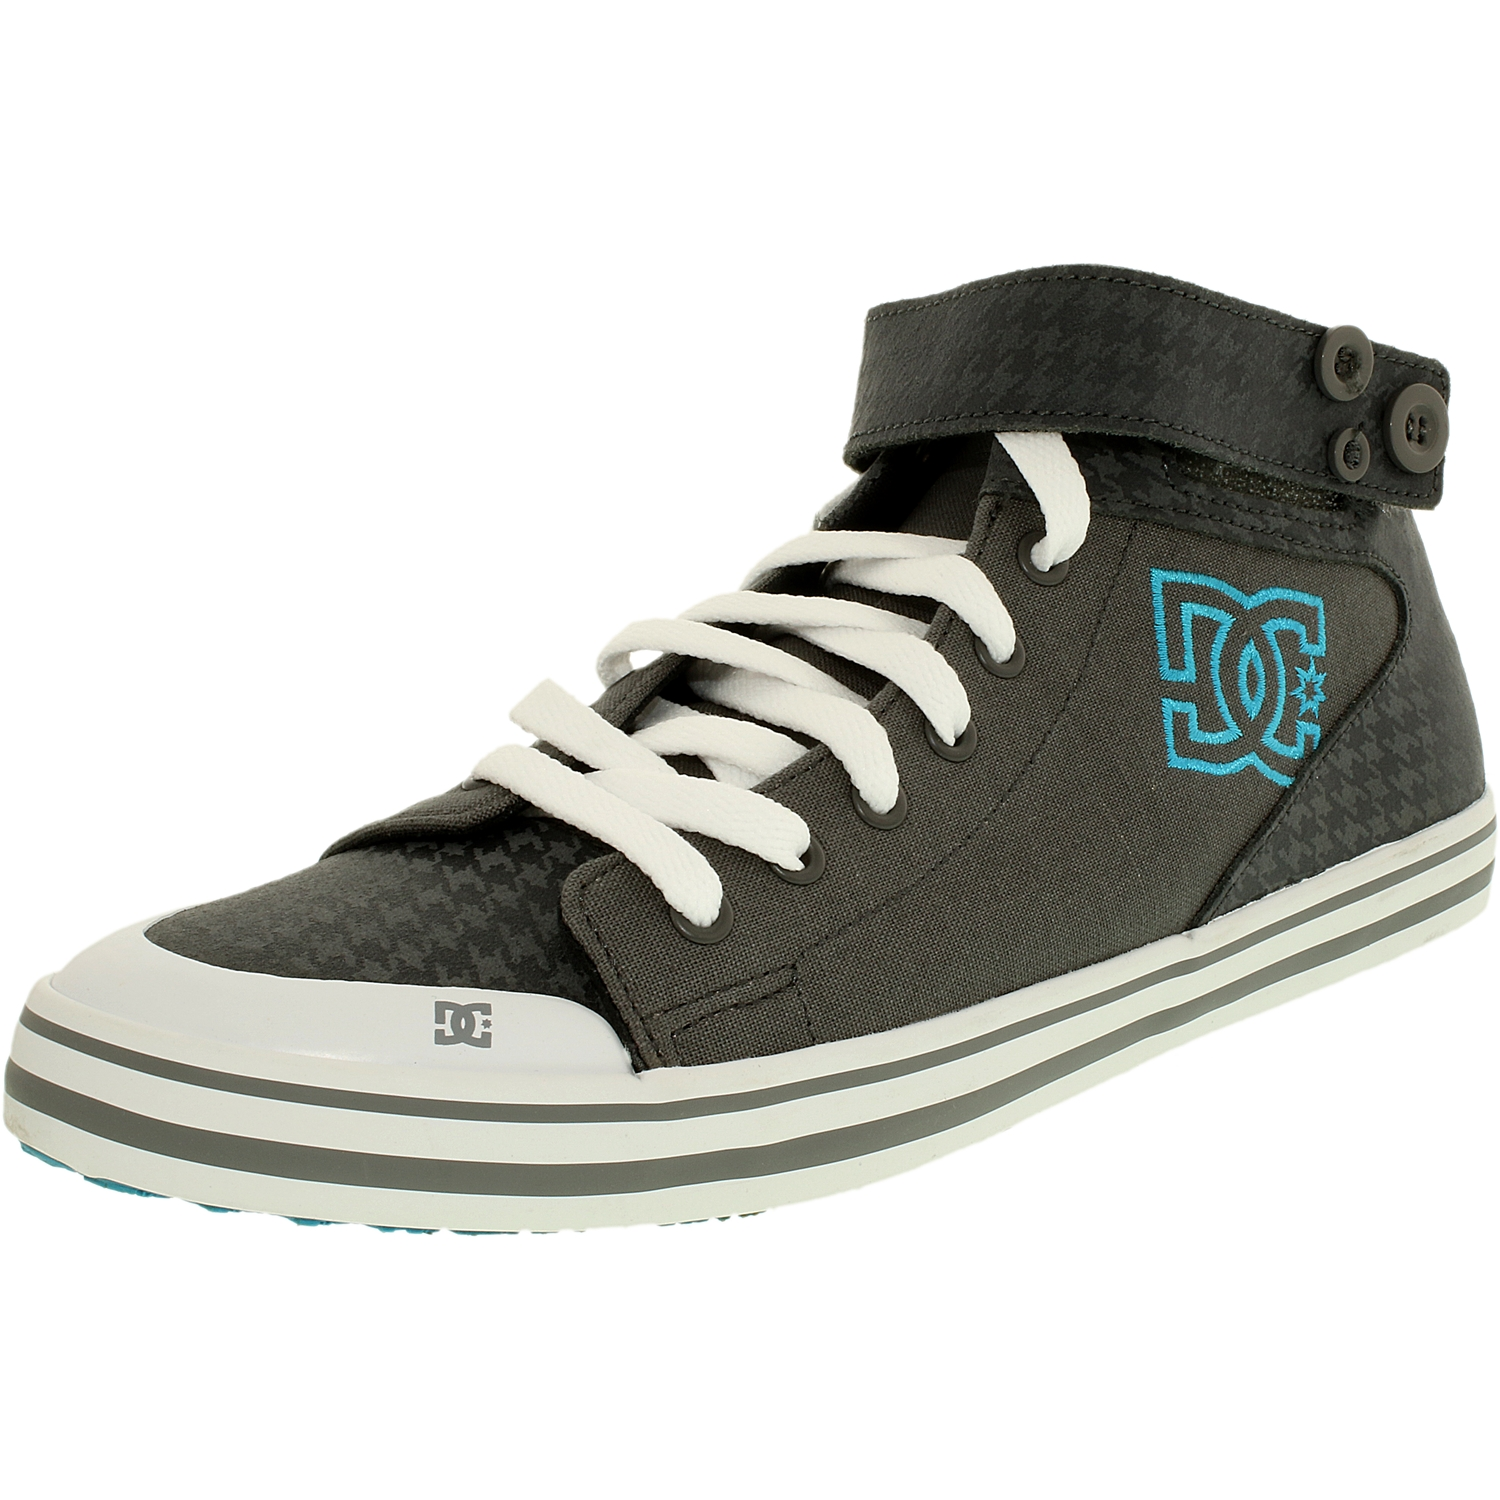 Dc Women's Venice M2 Se Ankle-High Leather Fashion Sneaker